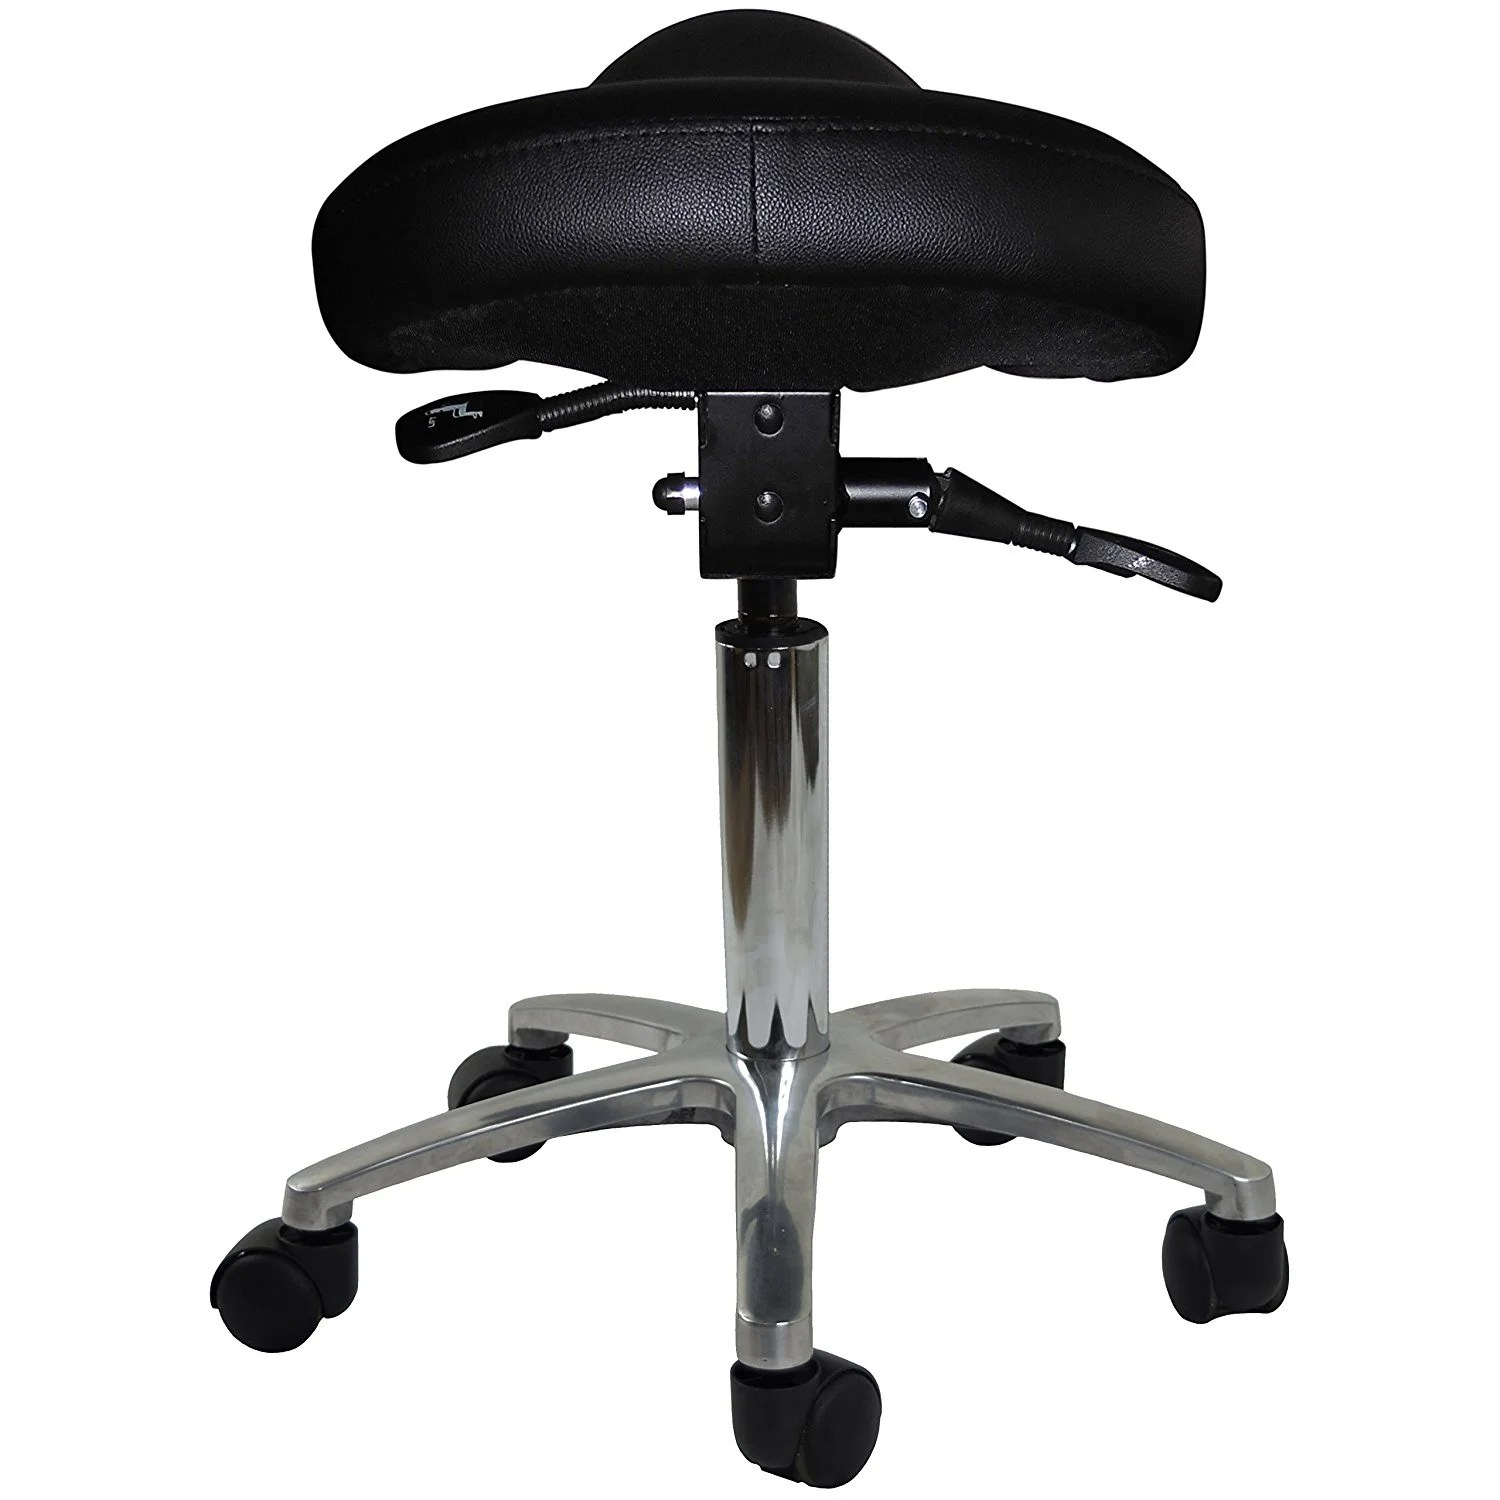 Saddle Office Chair 2xhome Adjustable Saddle Stool Backless Chair With Forward Tilting Seat Great For Home Office Exam Waiting Rooms More